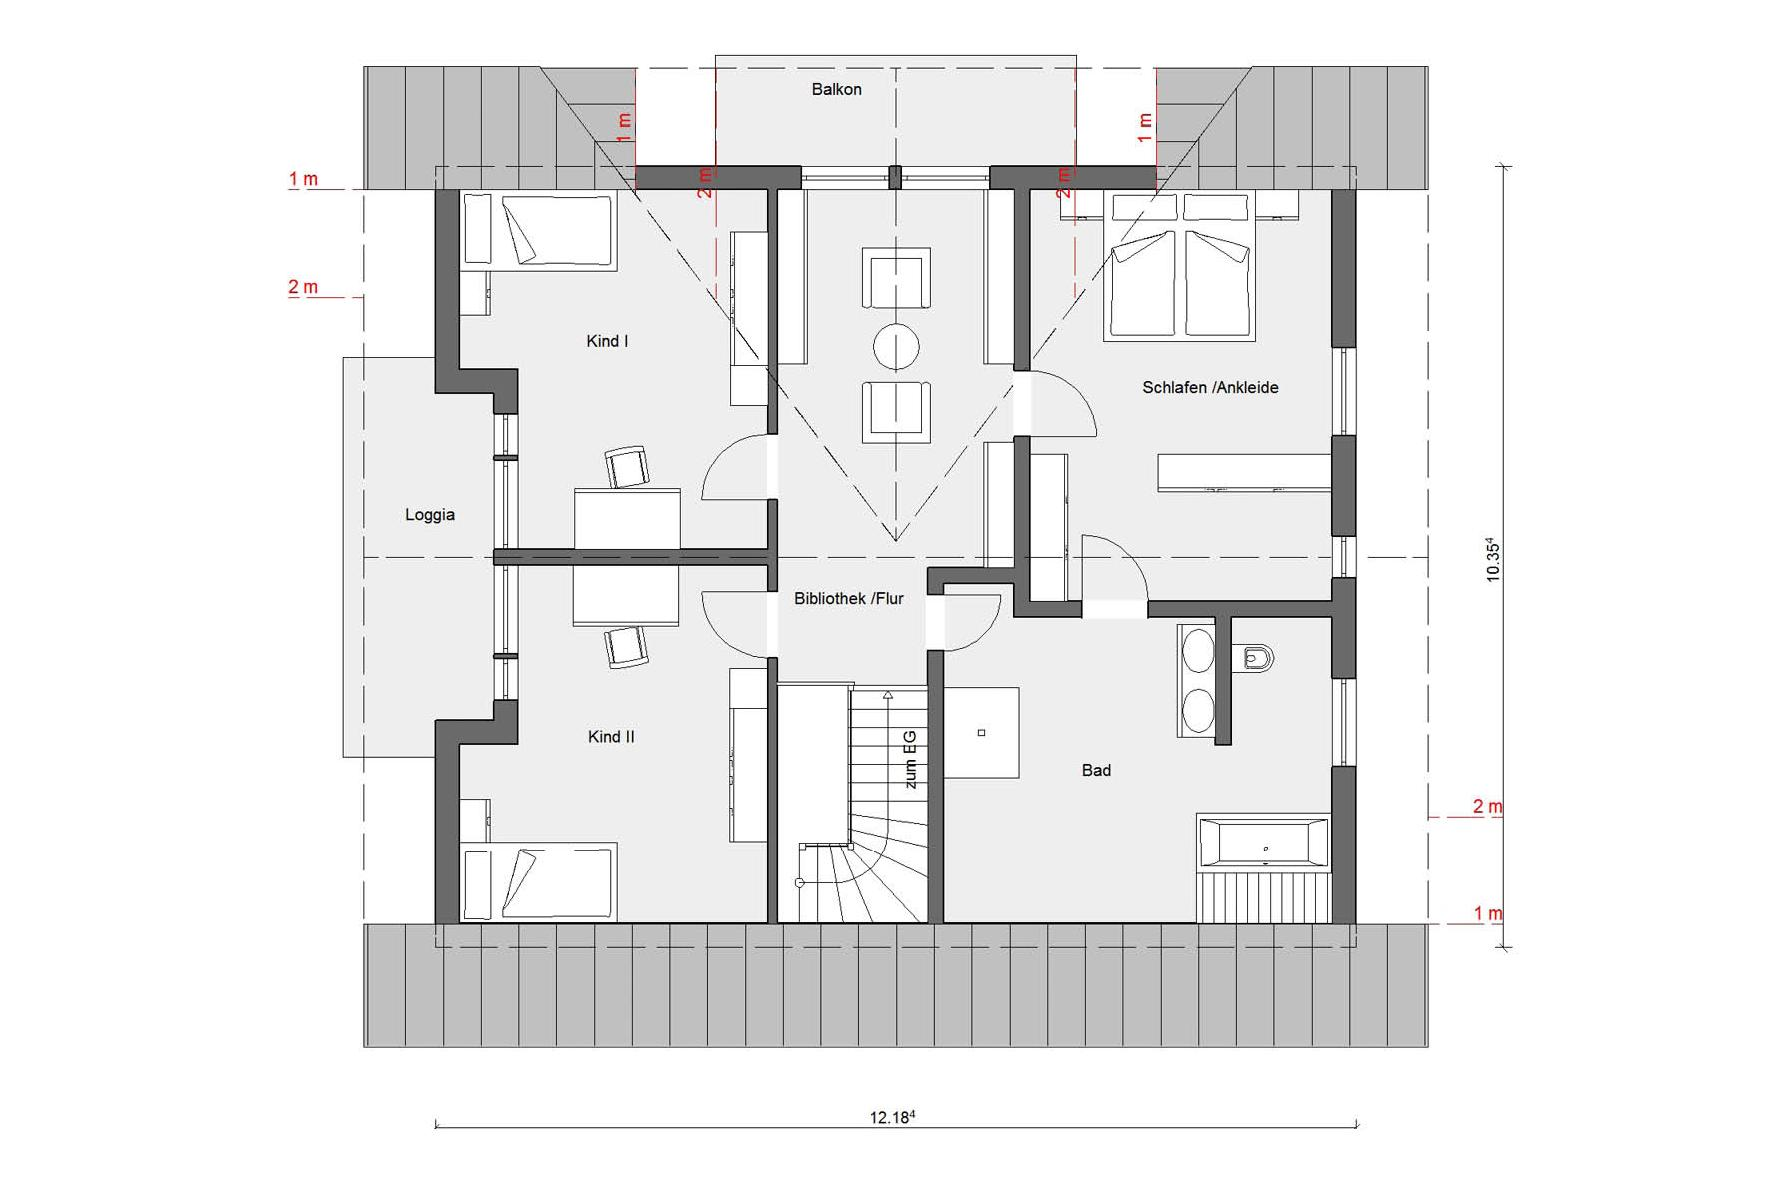 Floor plan attic E 15-205.1 House with conservatory